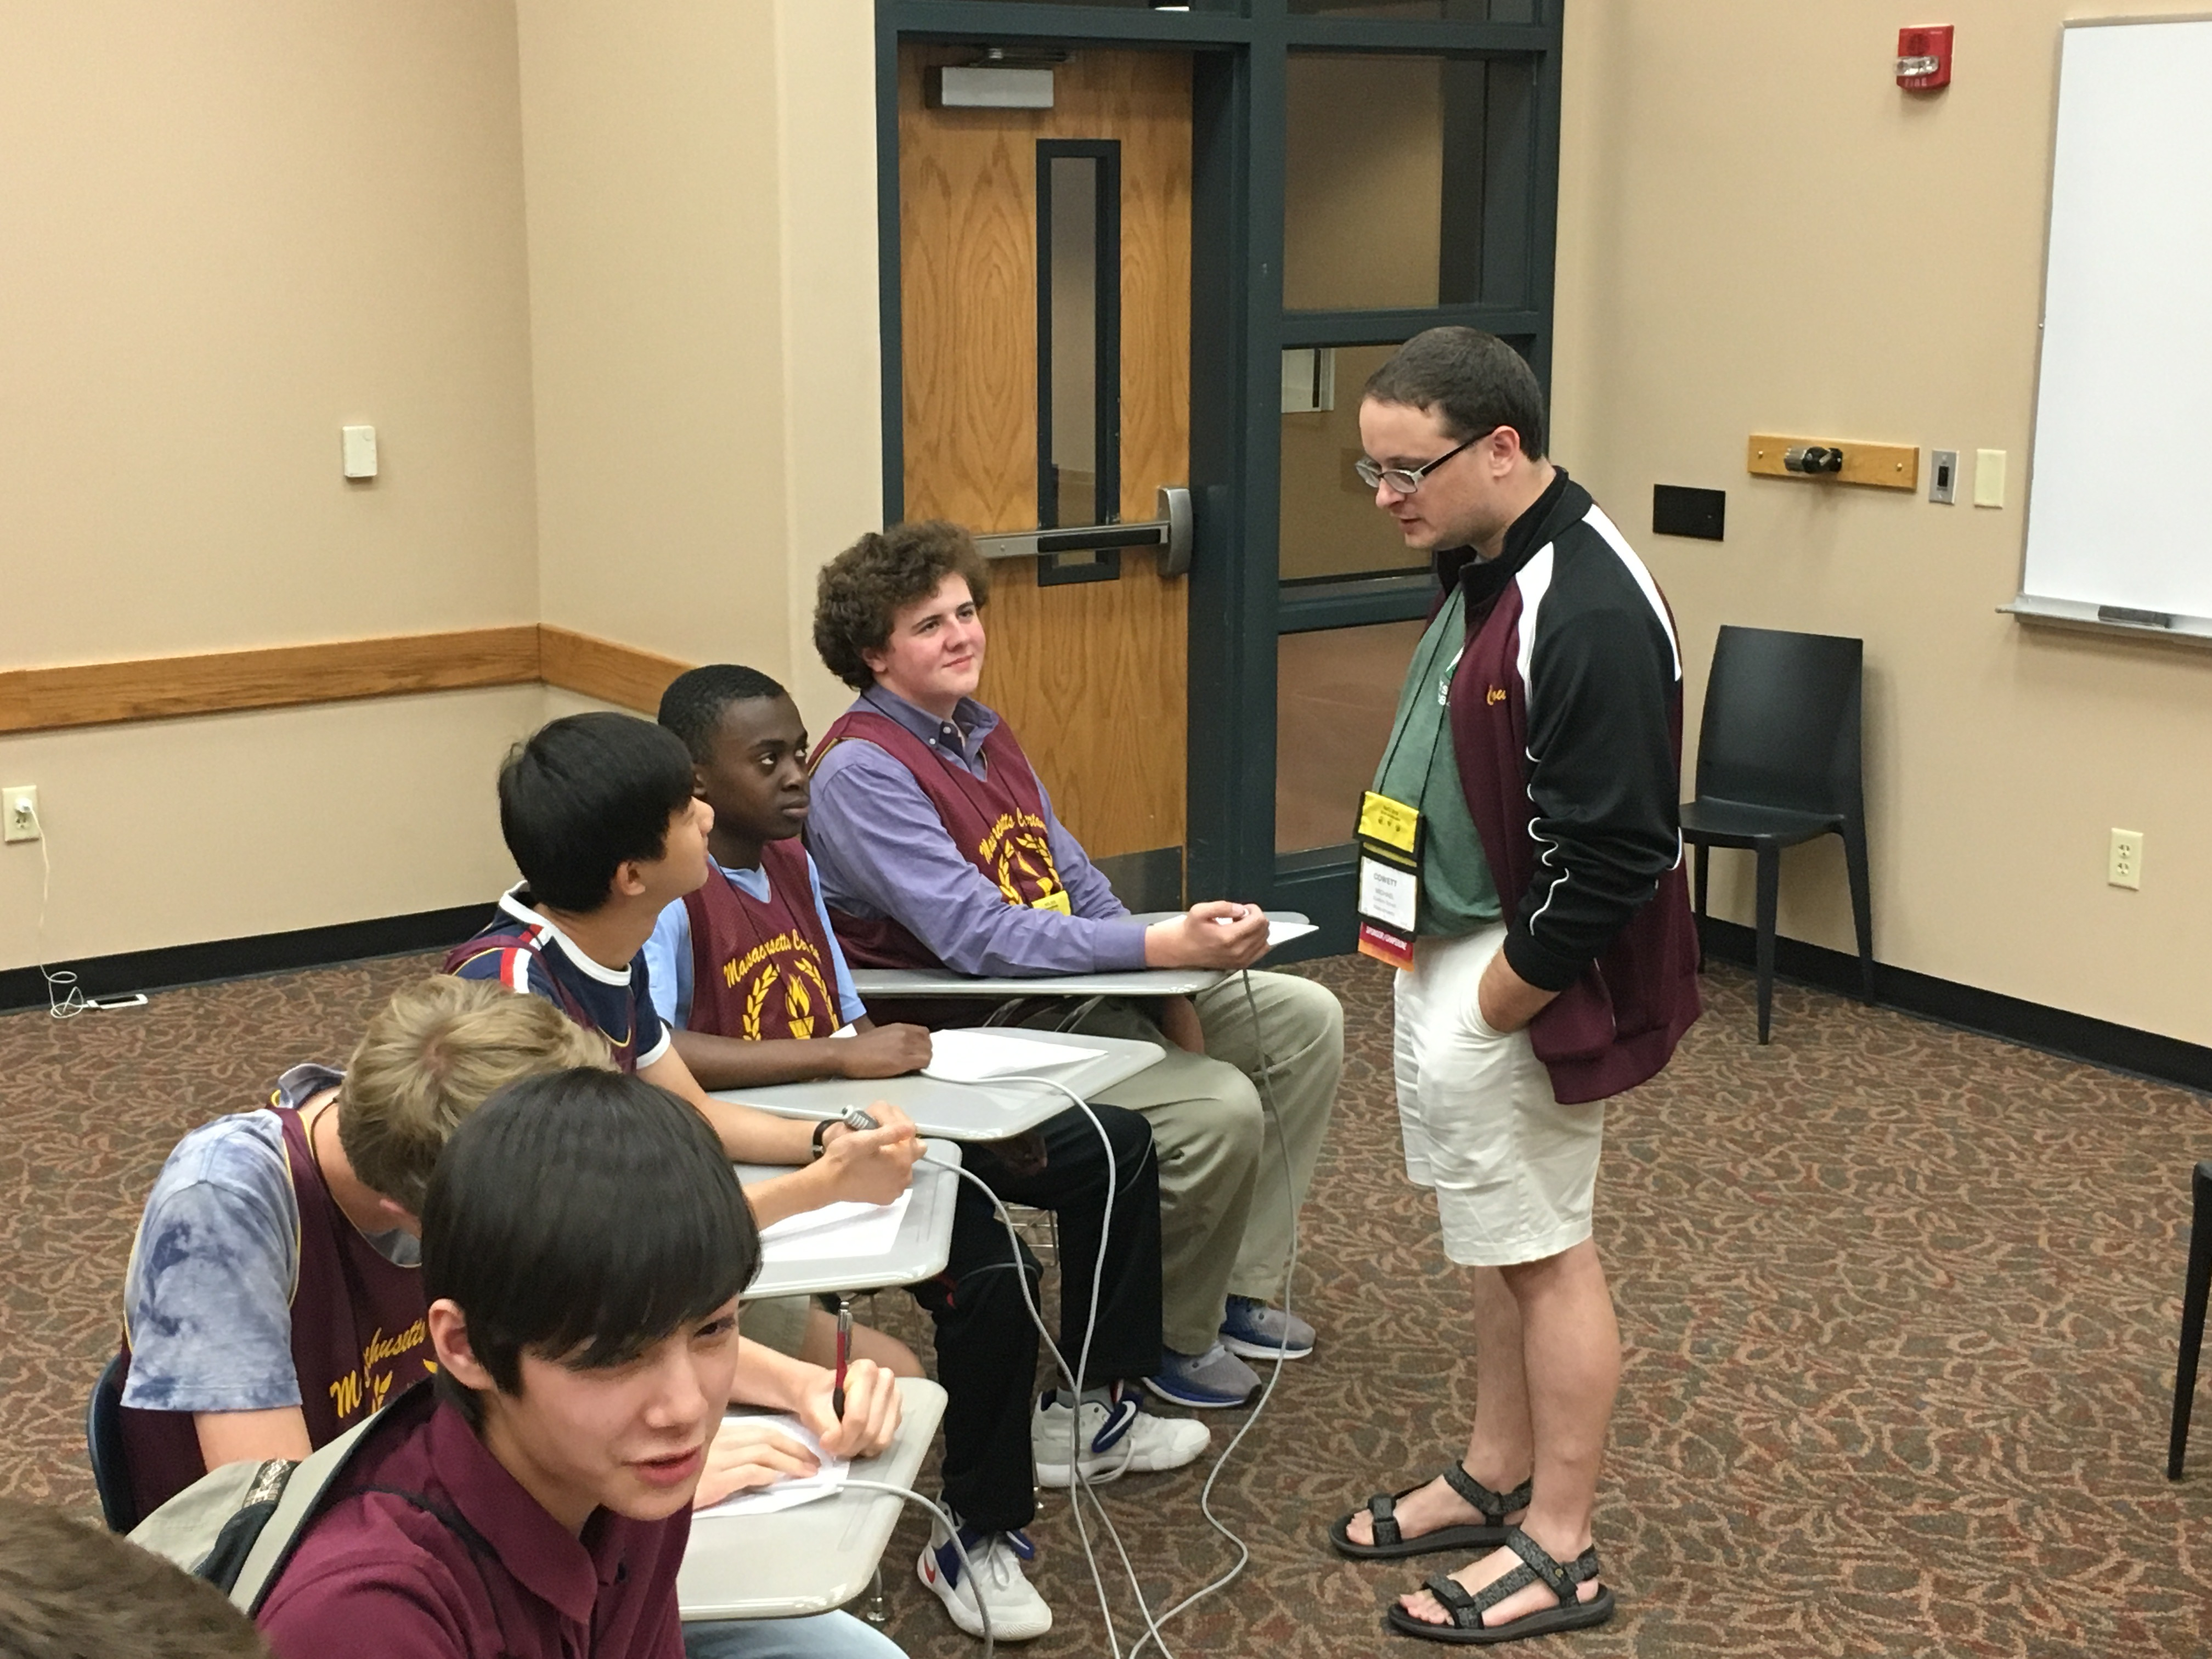 The author and his quiz bowl team. Photo courtesy of the author.